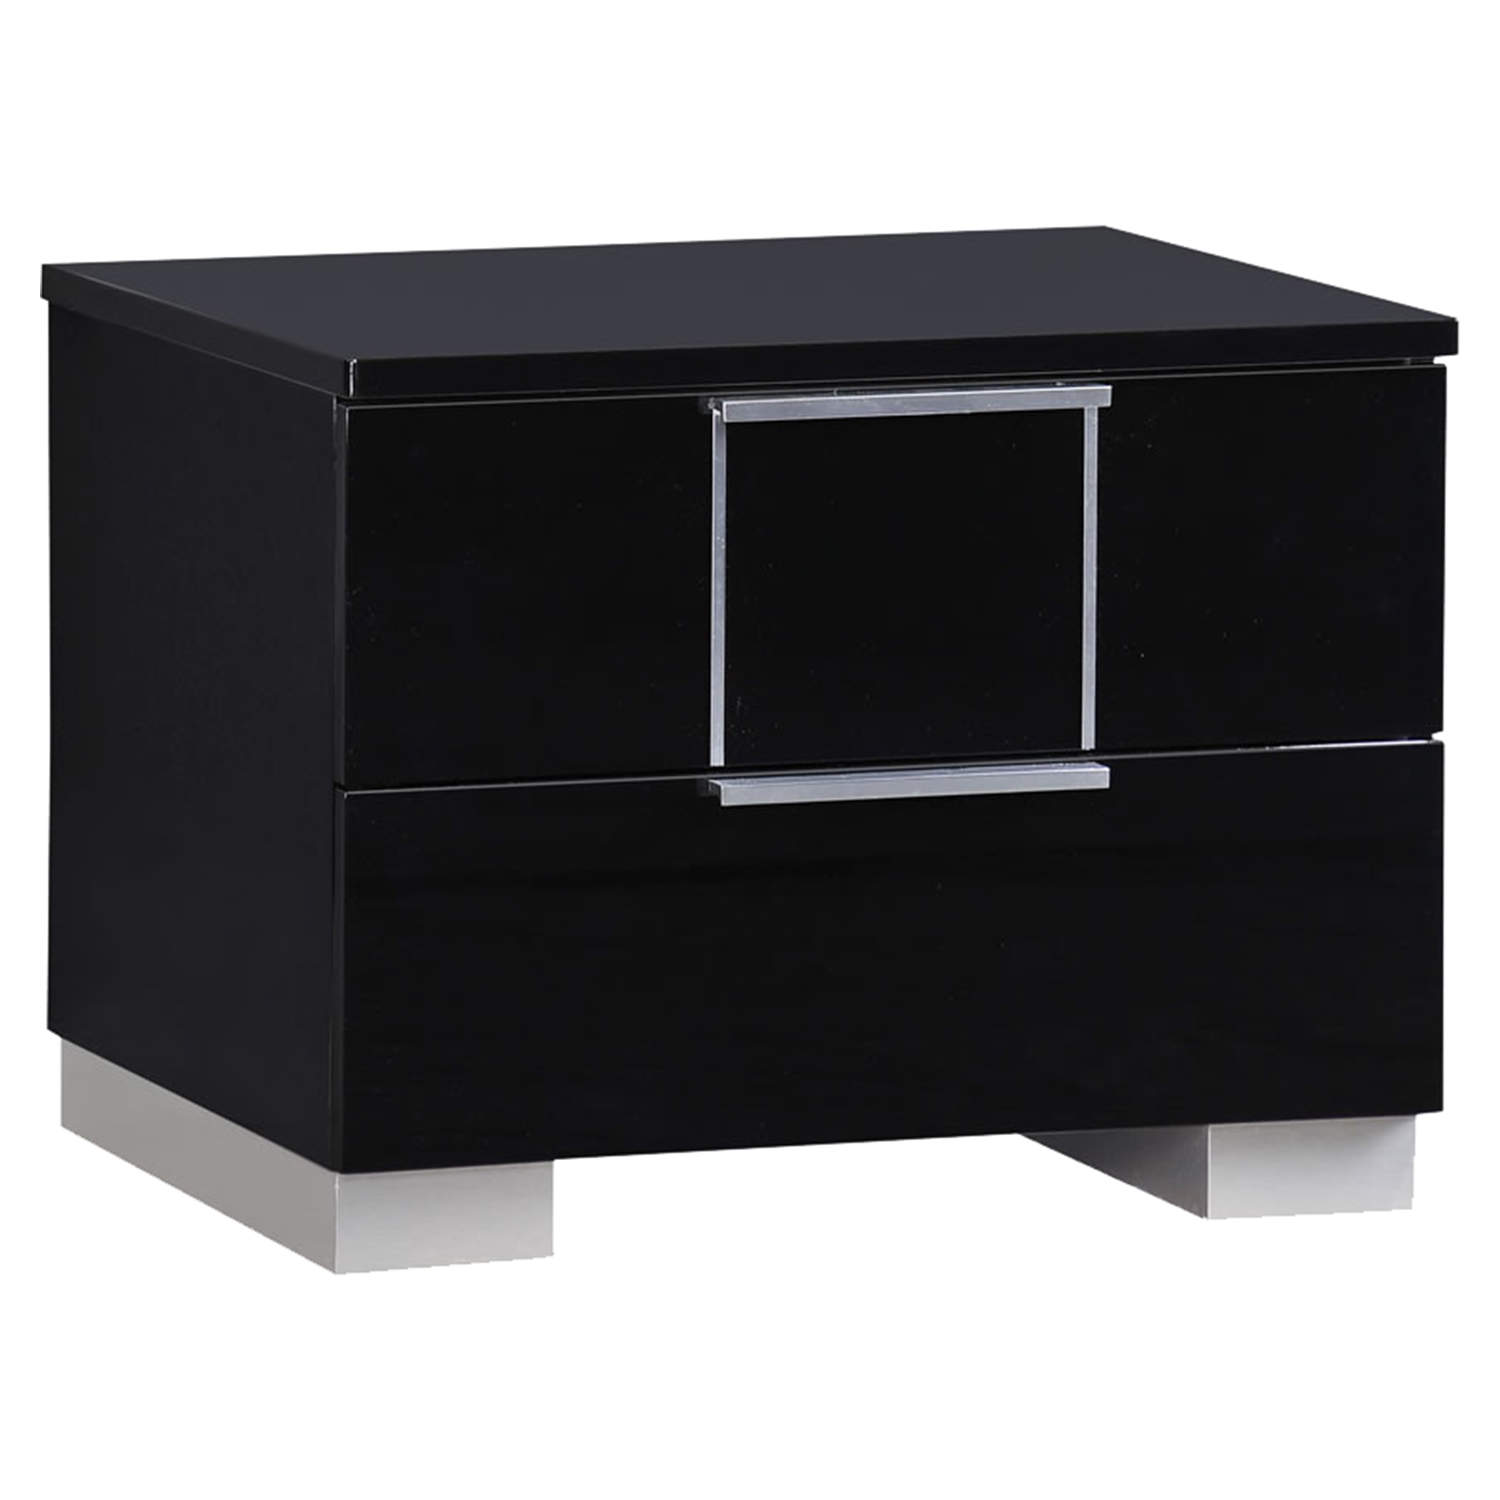 Hailey Nightstand, High Gloss Black